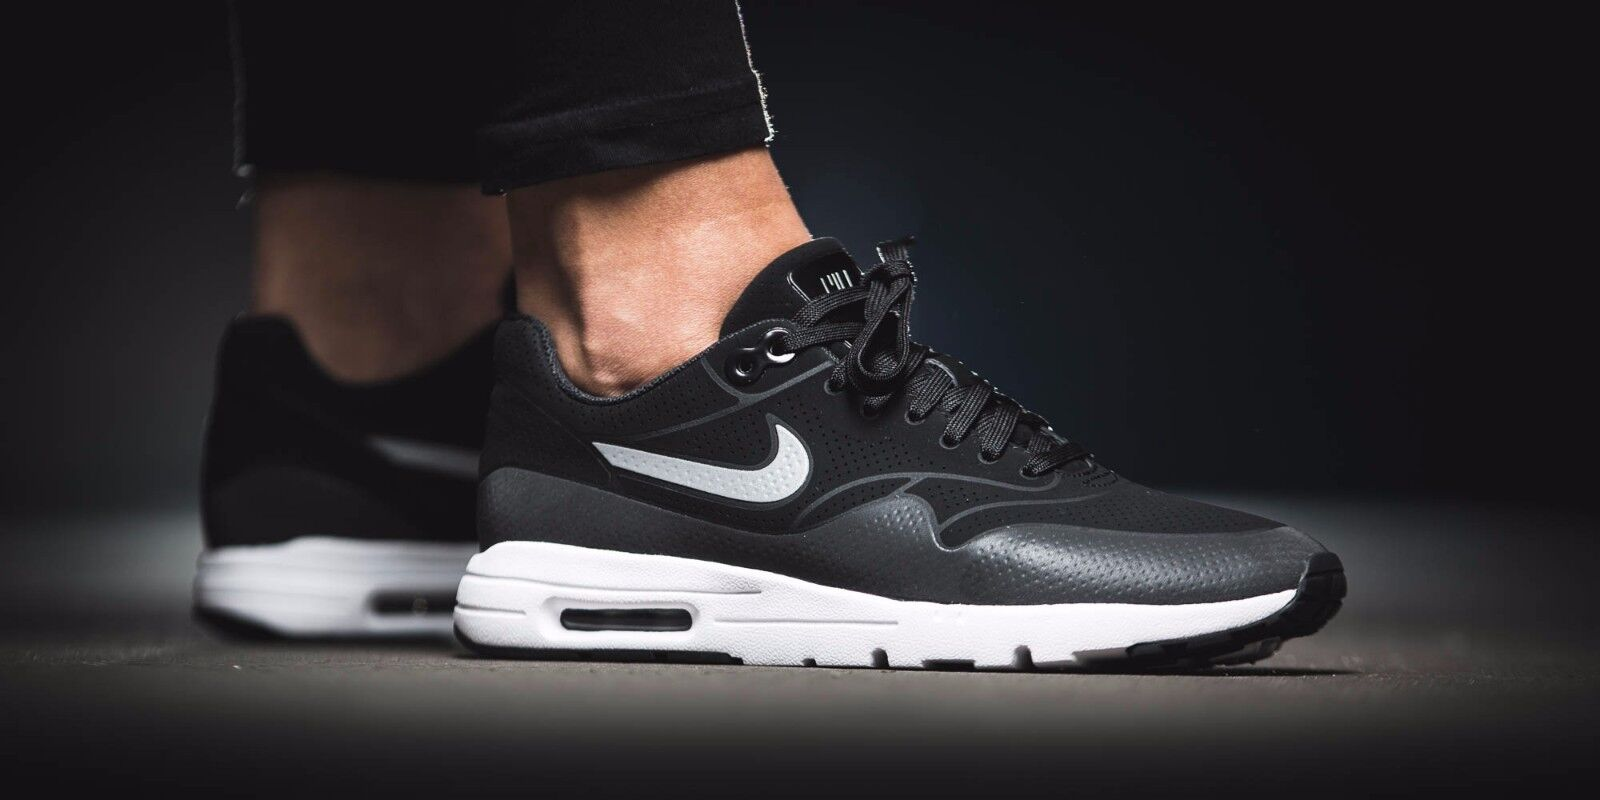 NIKE AIR MAX 1 ULTRA MOIRE REFLECTIVE BLACK/WHITE WMN Price reduction